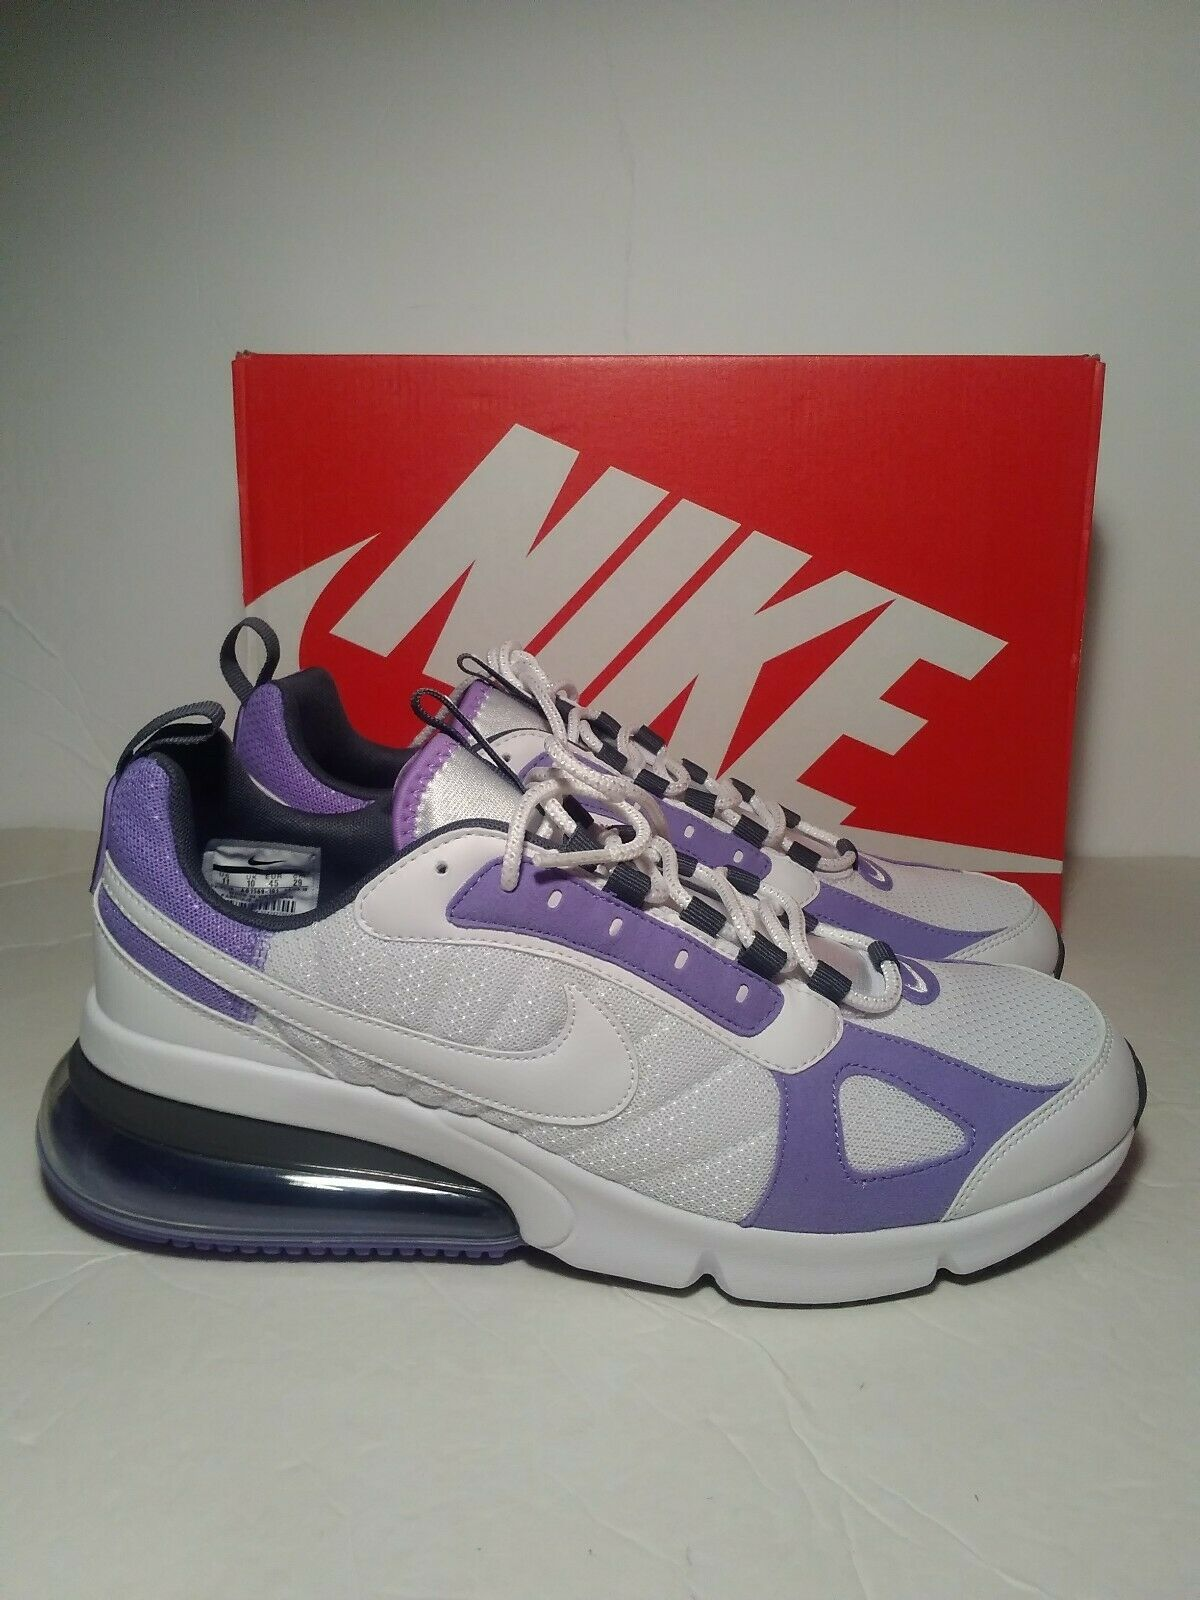 Nike Air Max 270 Futura White purple Sneakers AO1569-101 Men Size 12